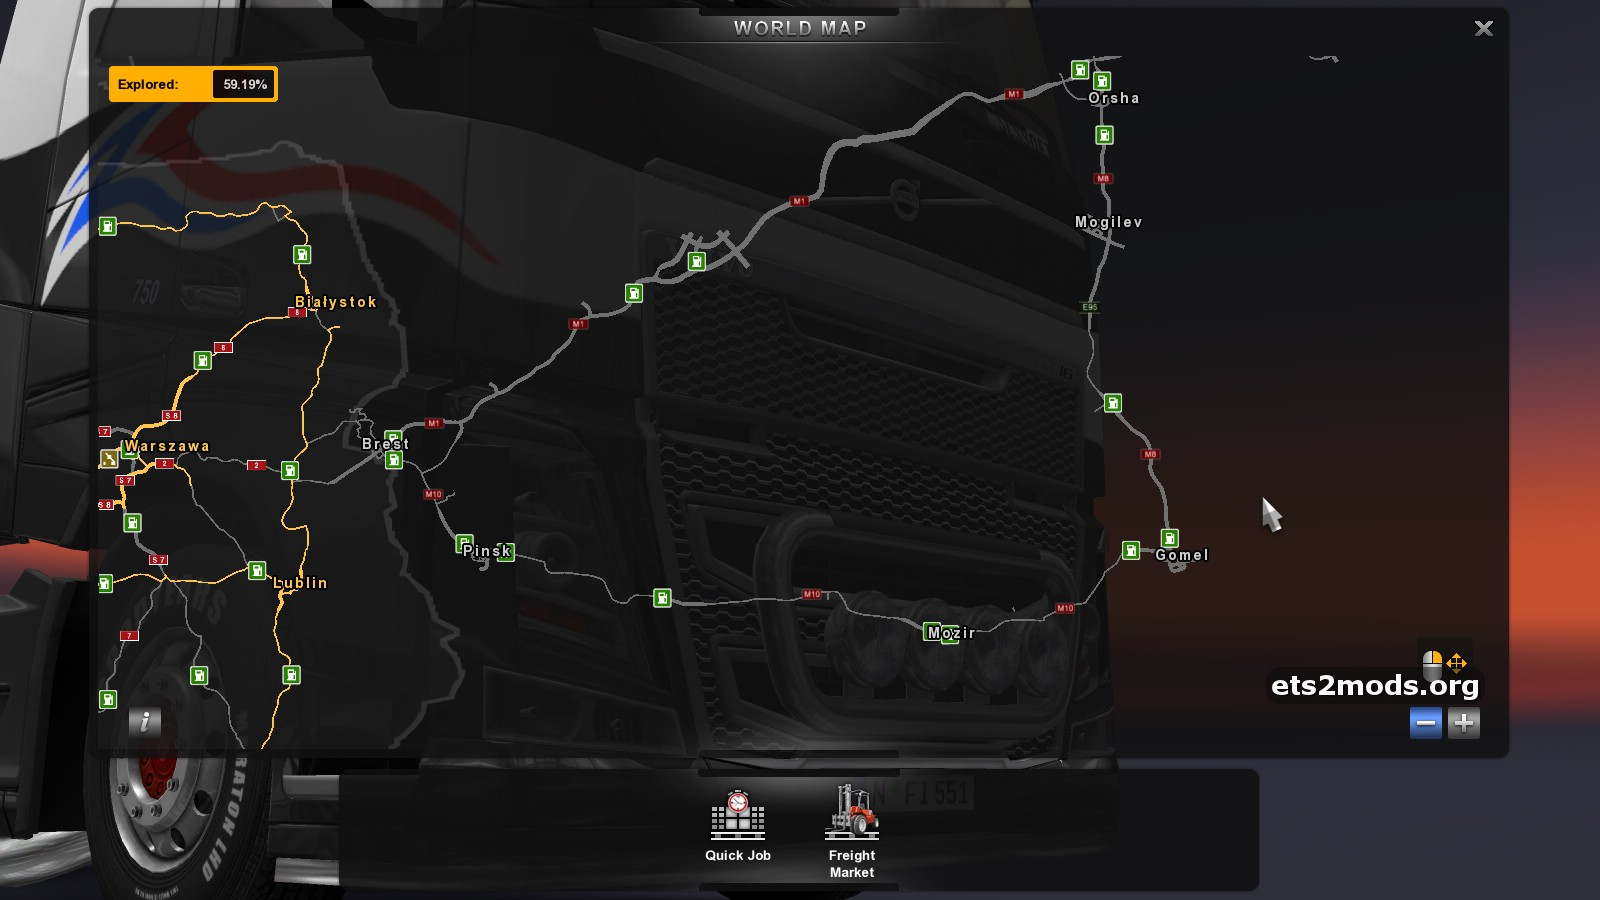 Download Rusmap 1 2 Map Mod By Aldimattor For Euro Truck Simulator 2 Tested On 1 10 1 Version